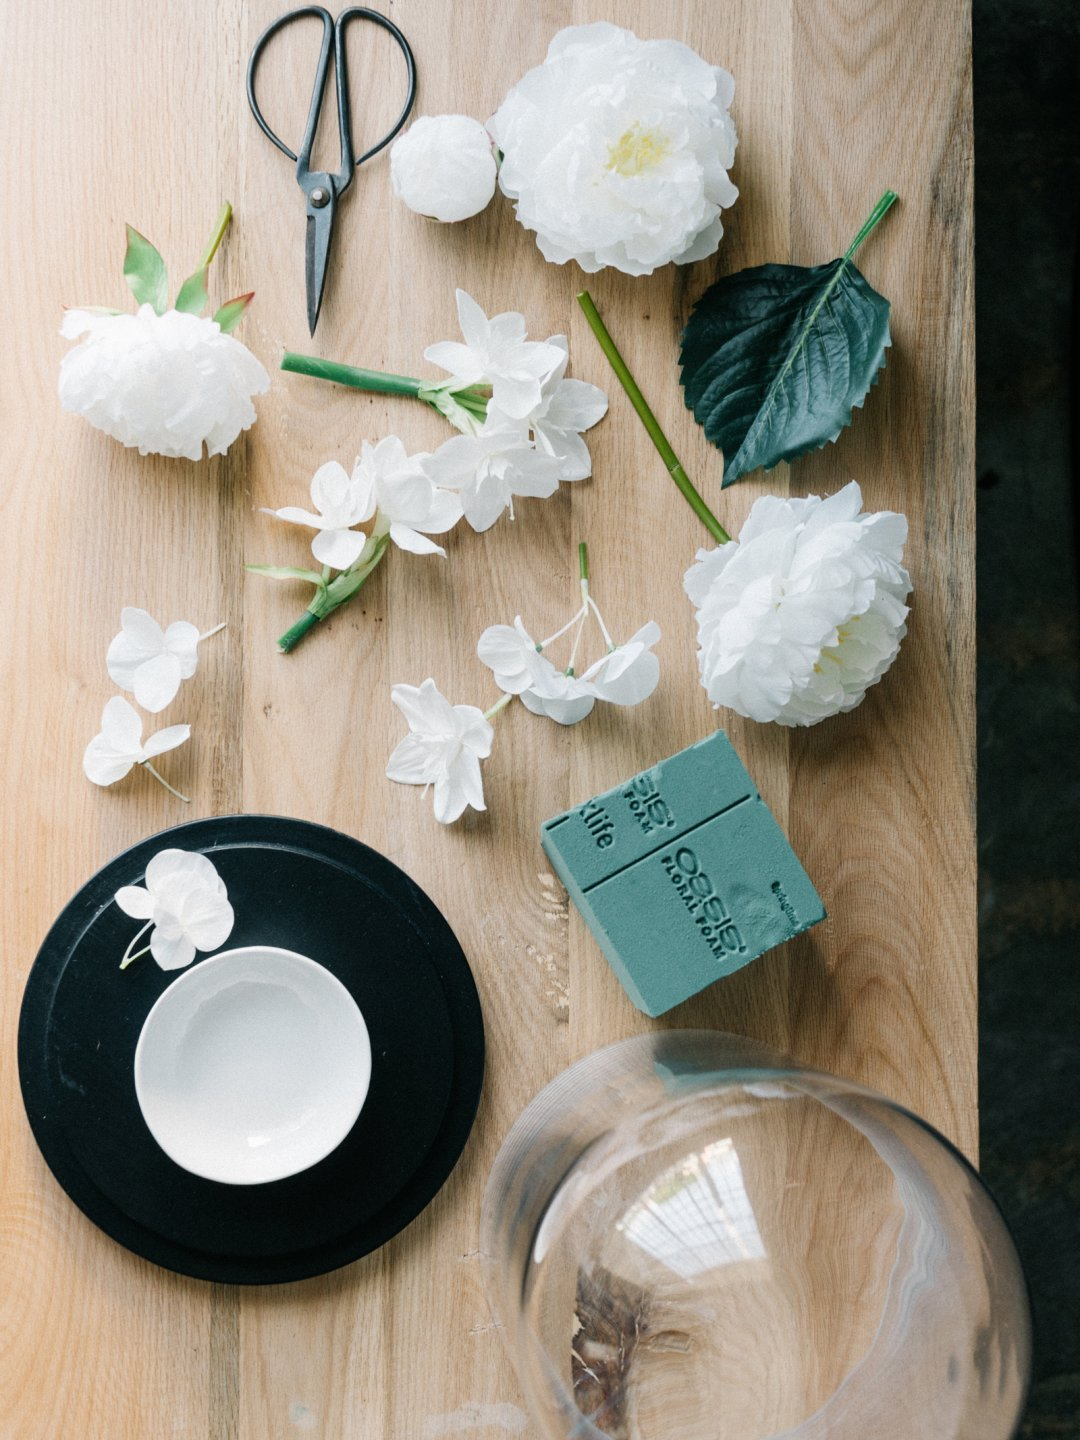 white flowers, scissors, and floral foam sit on a wood table ready to be displayed in a glass container